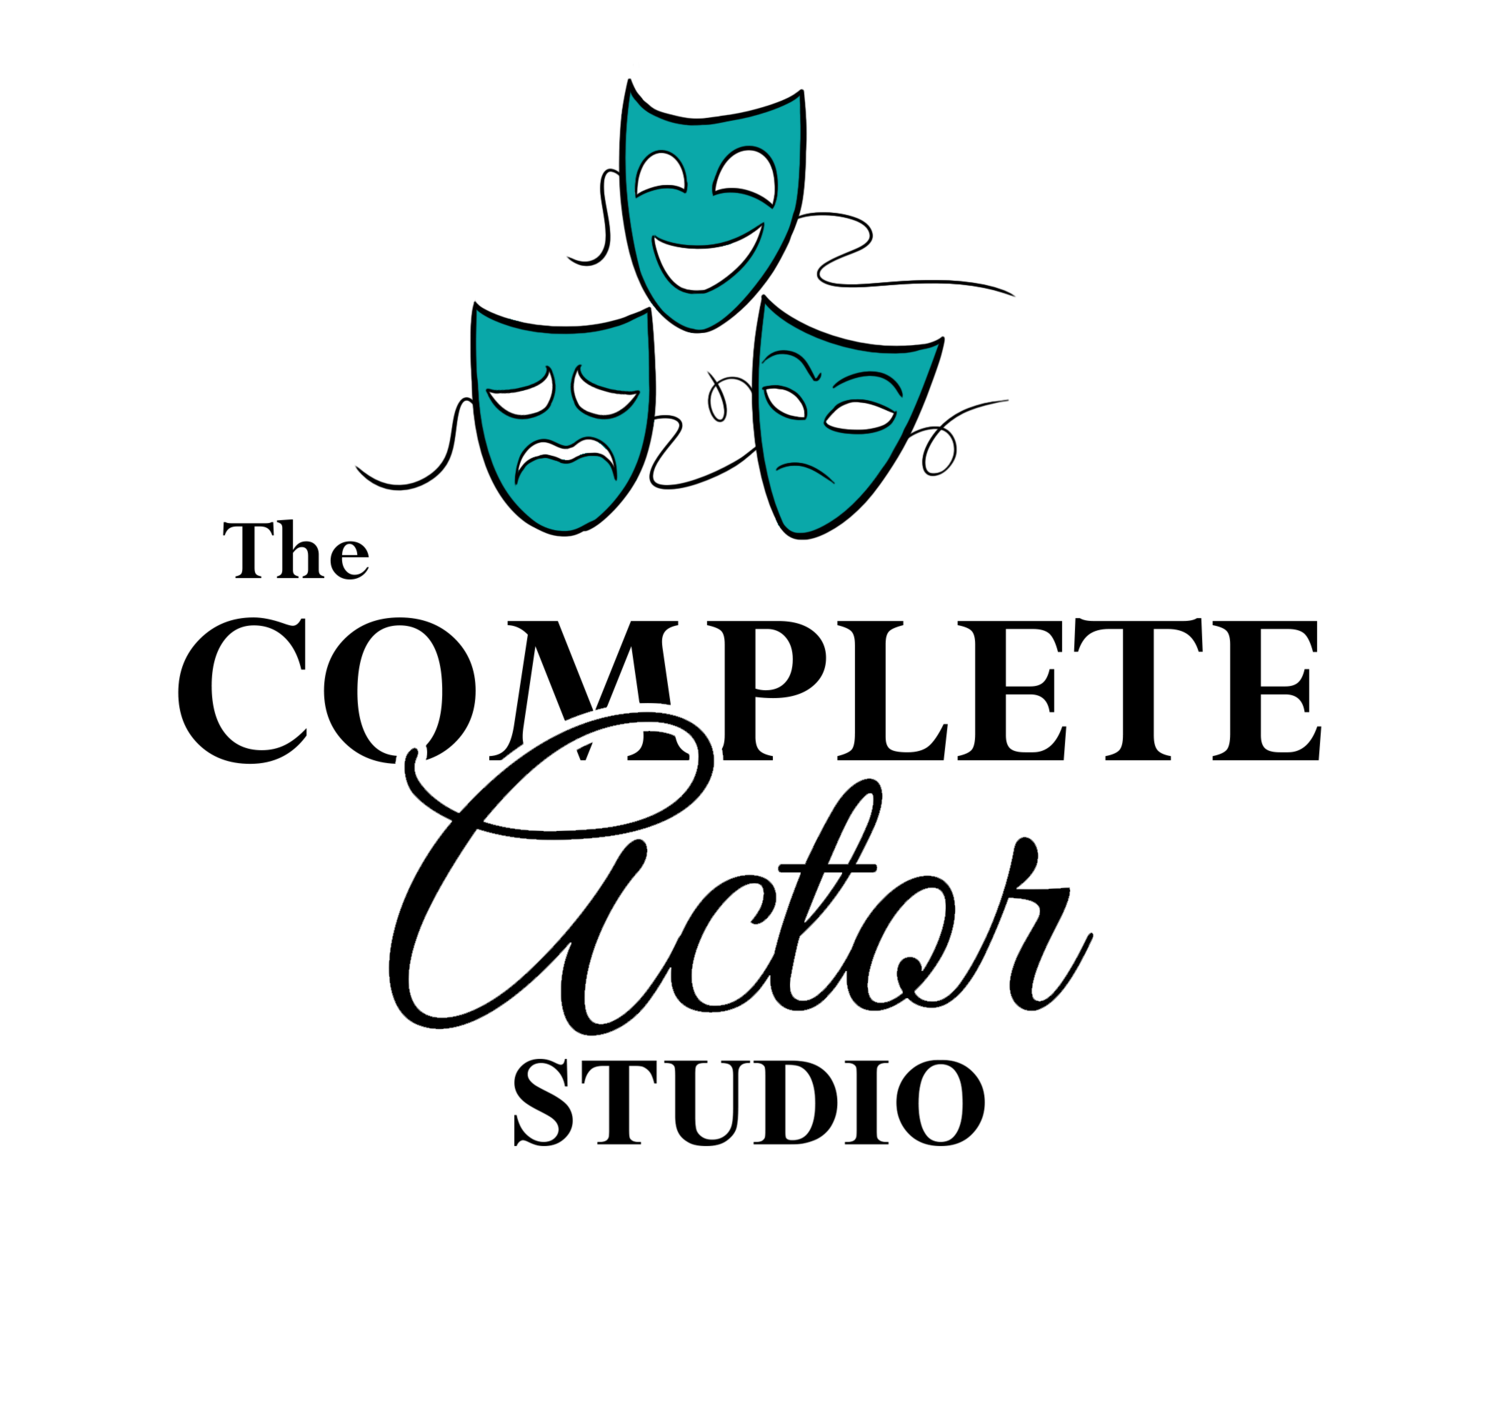 The Complete Actor